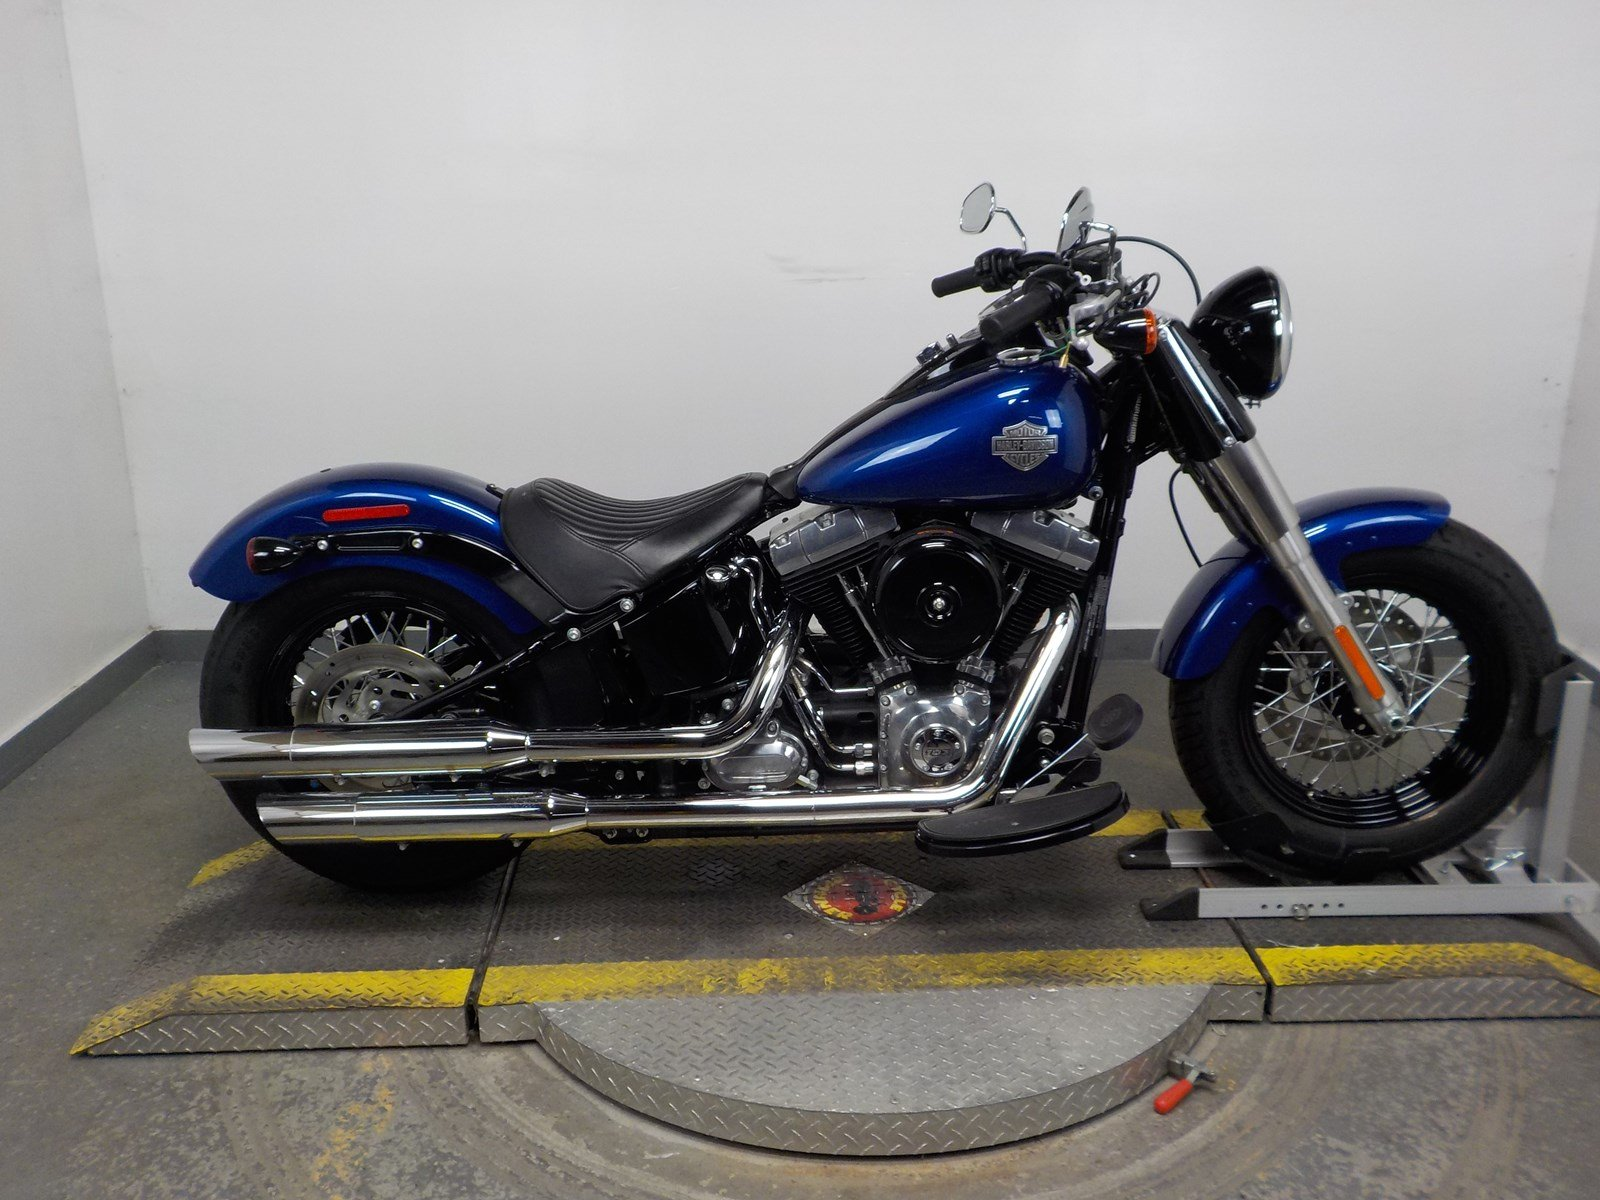 Pre-Owned 2015 Harley-Davidson Softail Slim FLS